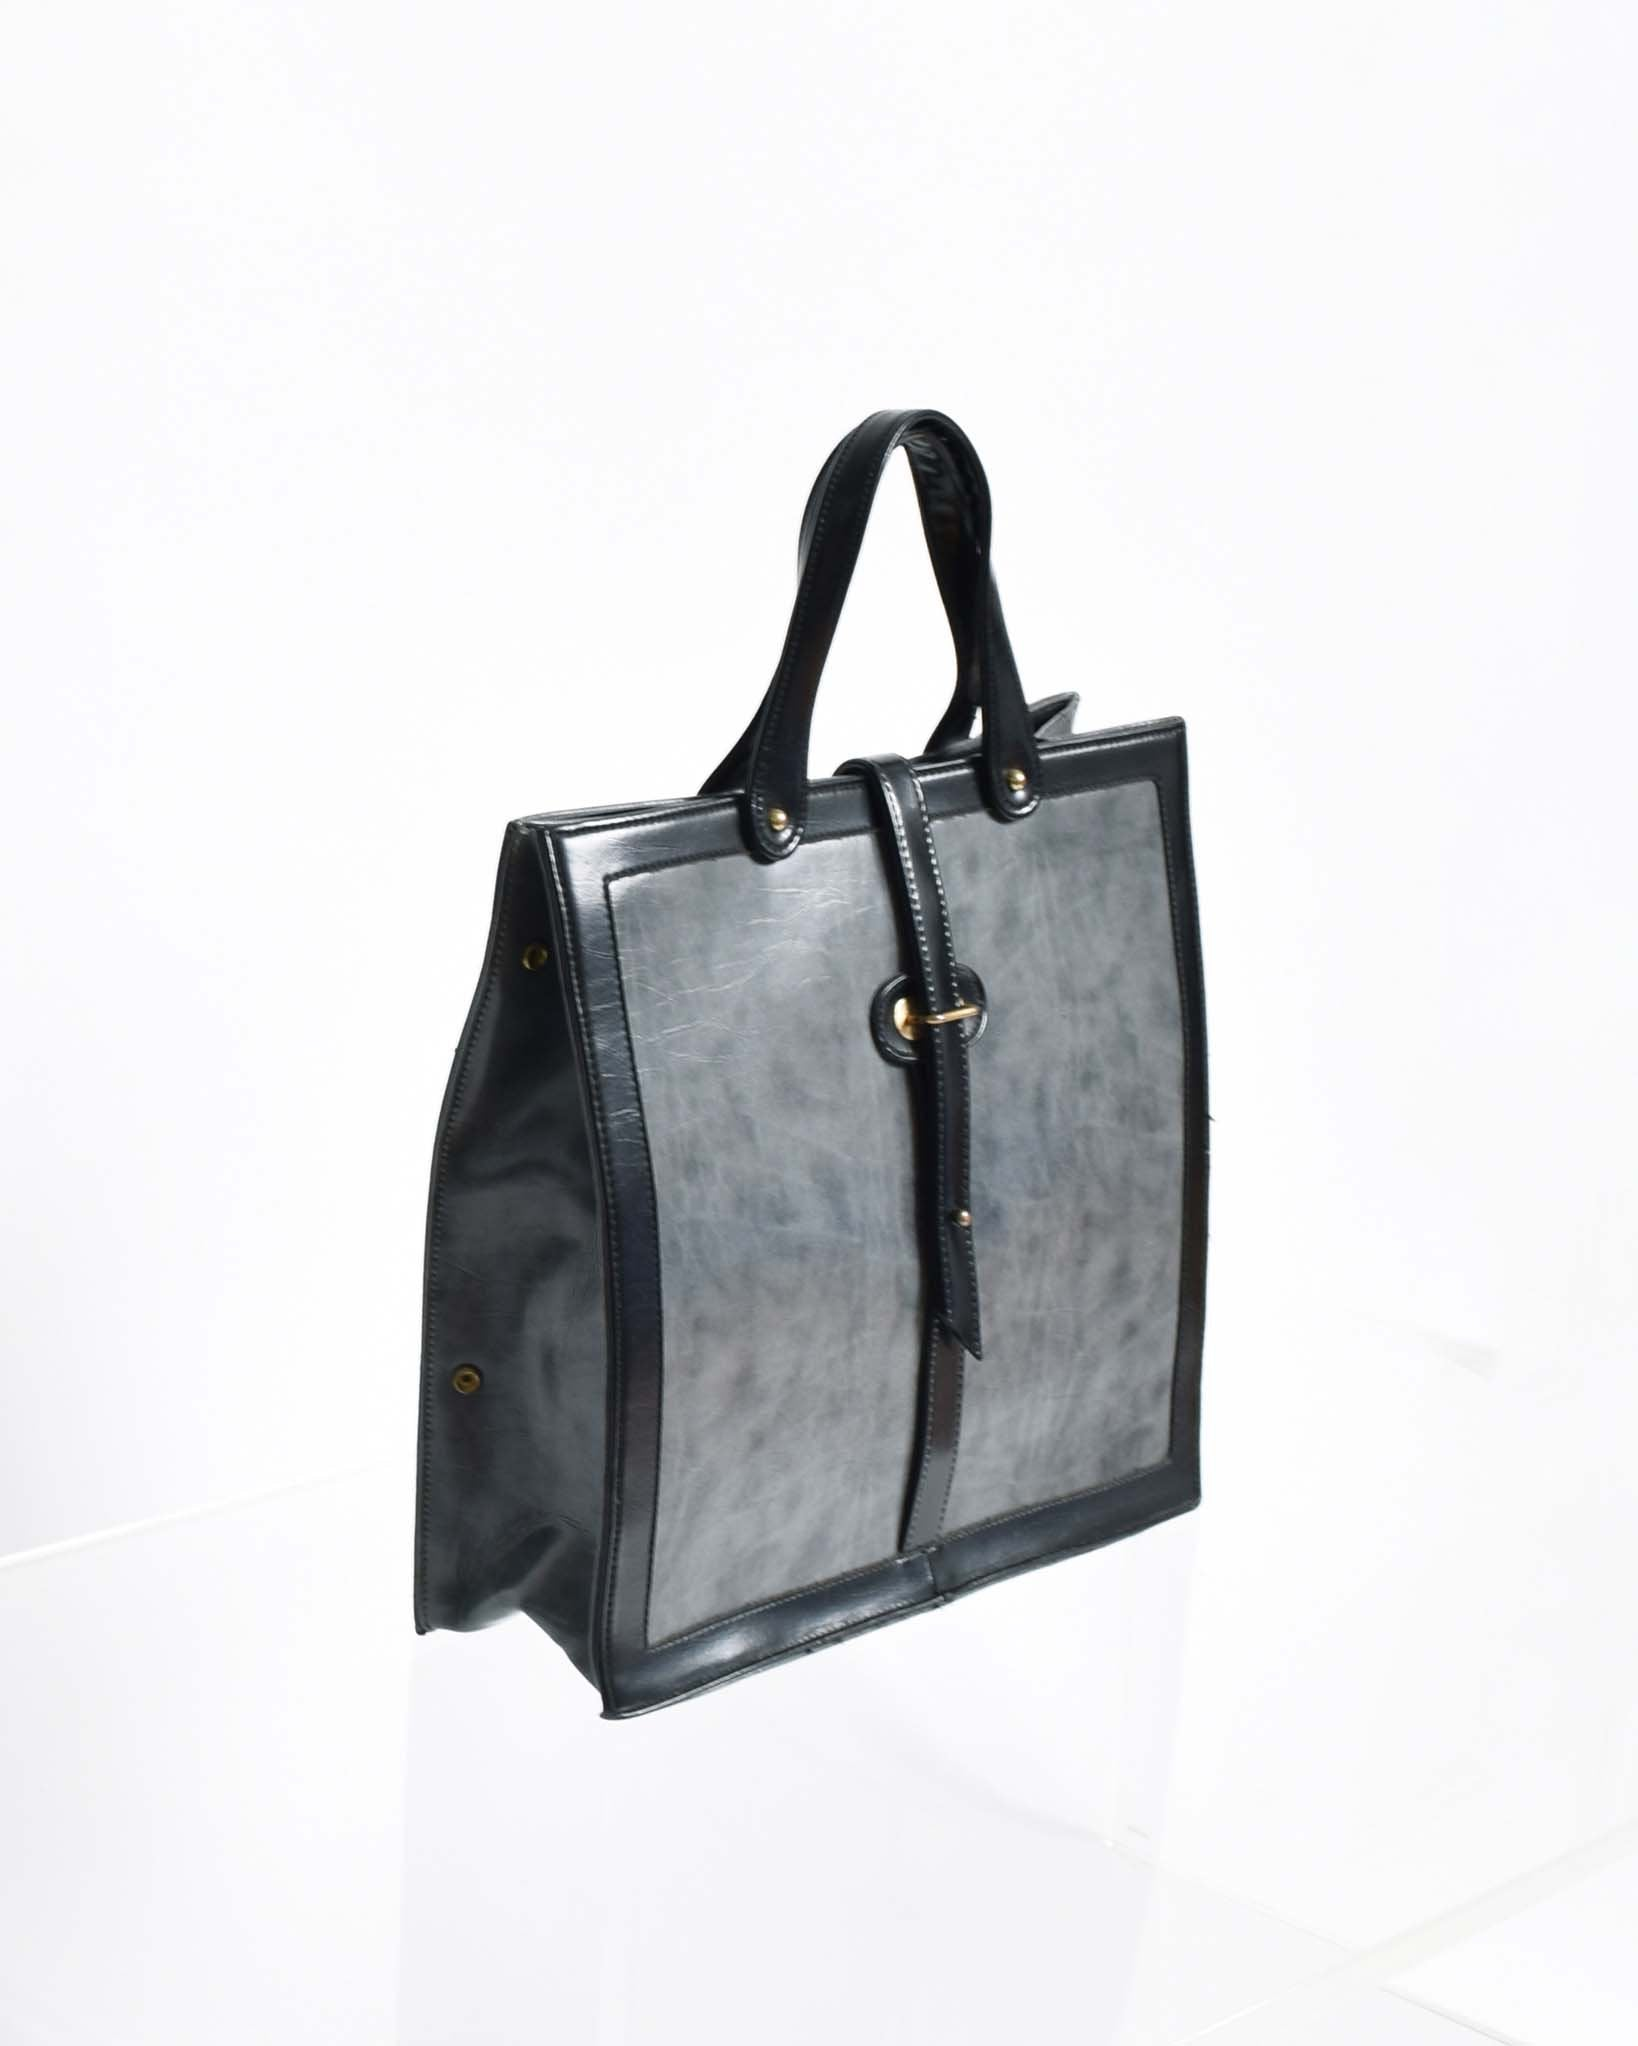 Vintage 1960s Large Grey Tote